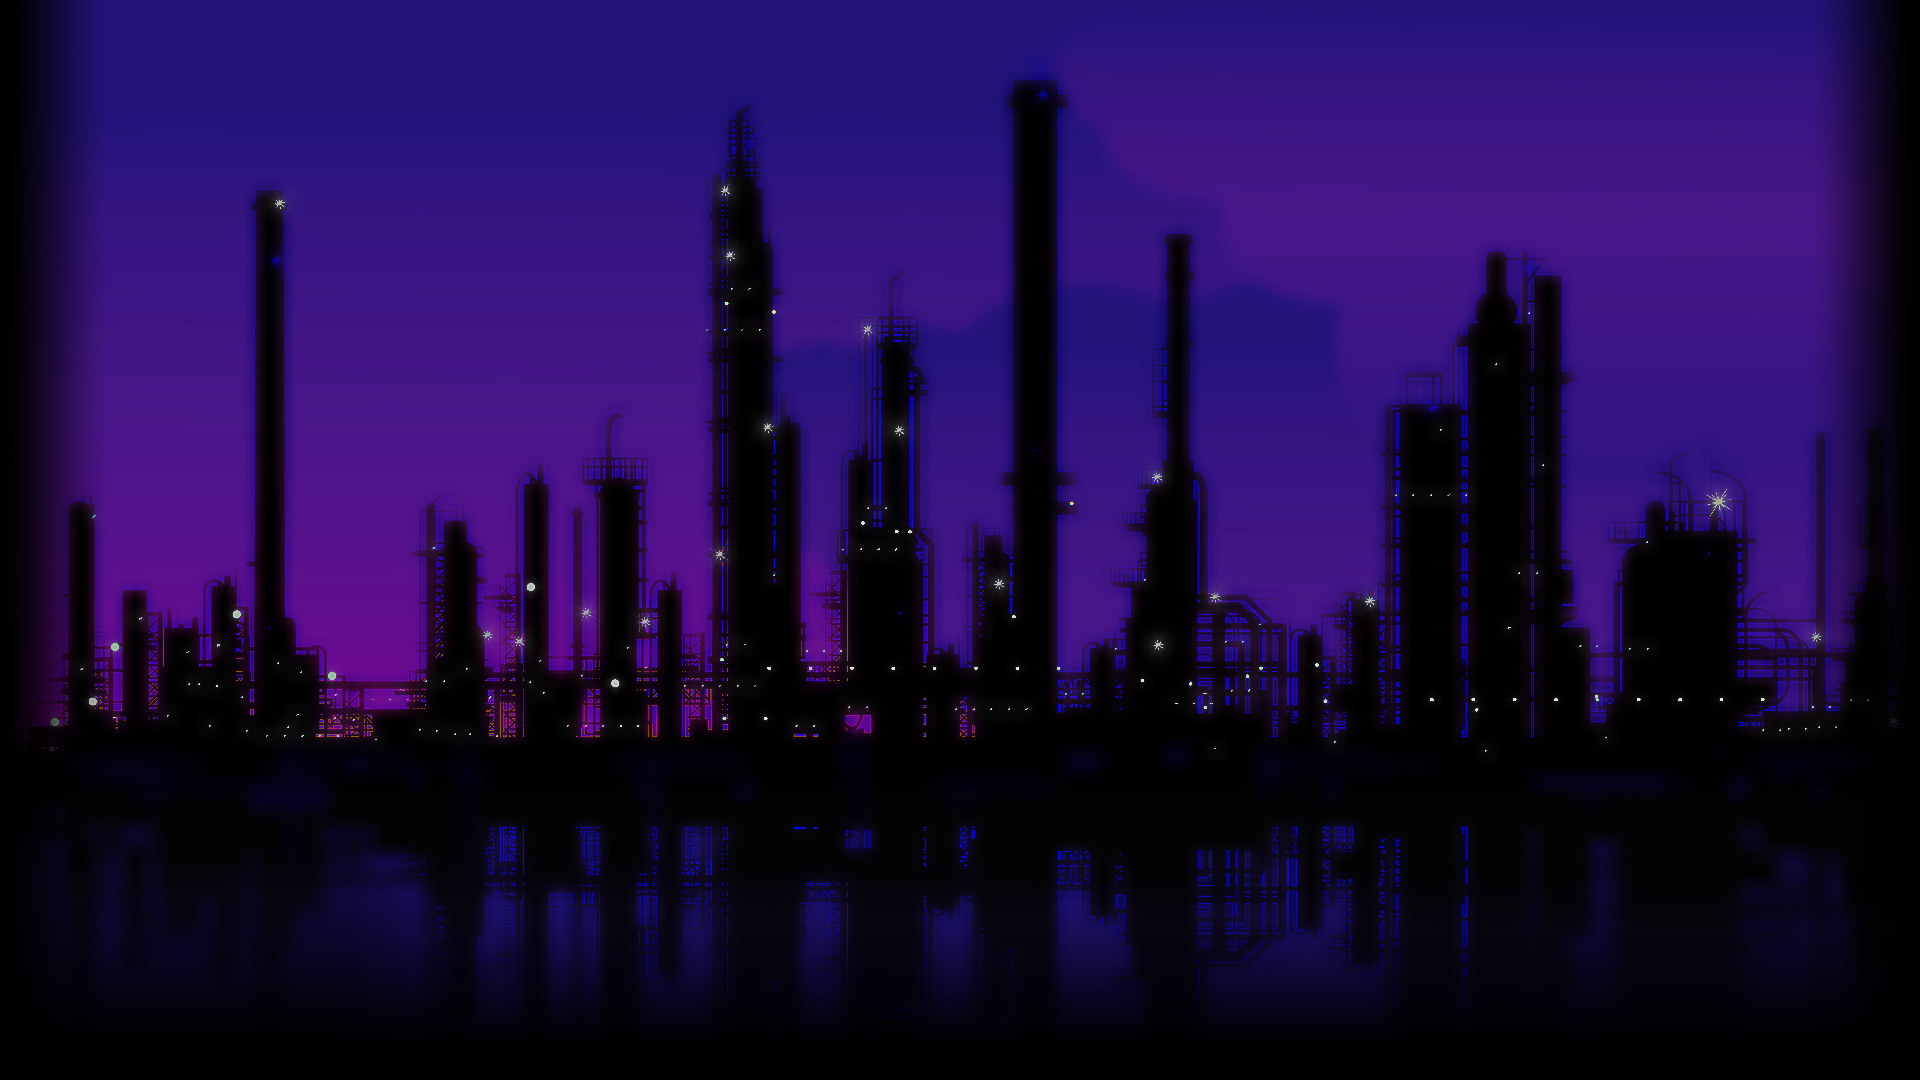 Purple Steam Backgrounds Posted By Zoey Anderson